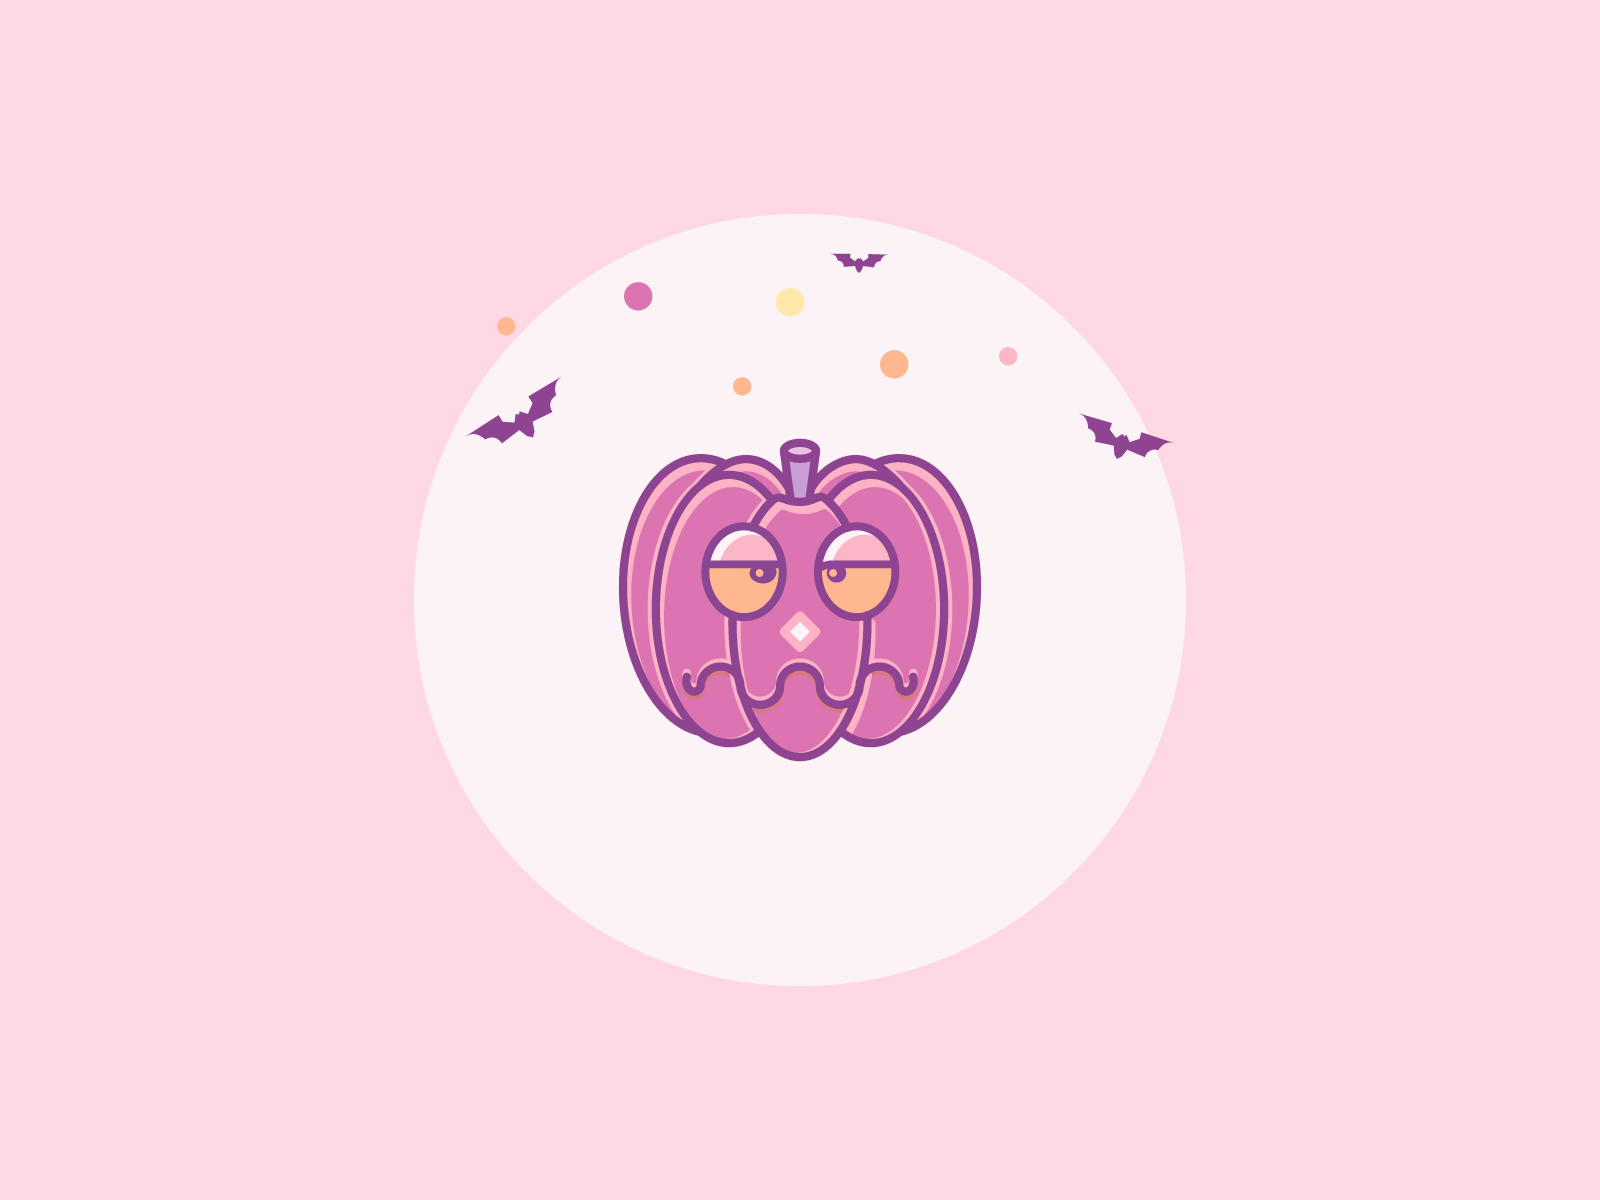 Bored Pumpkin Halloween halloween design illustration autumn pumpkin icons halloween